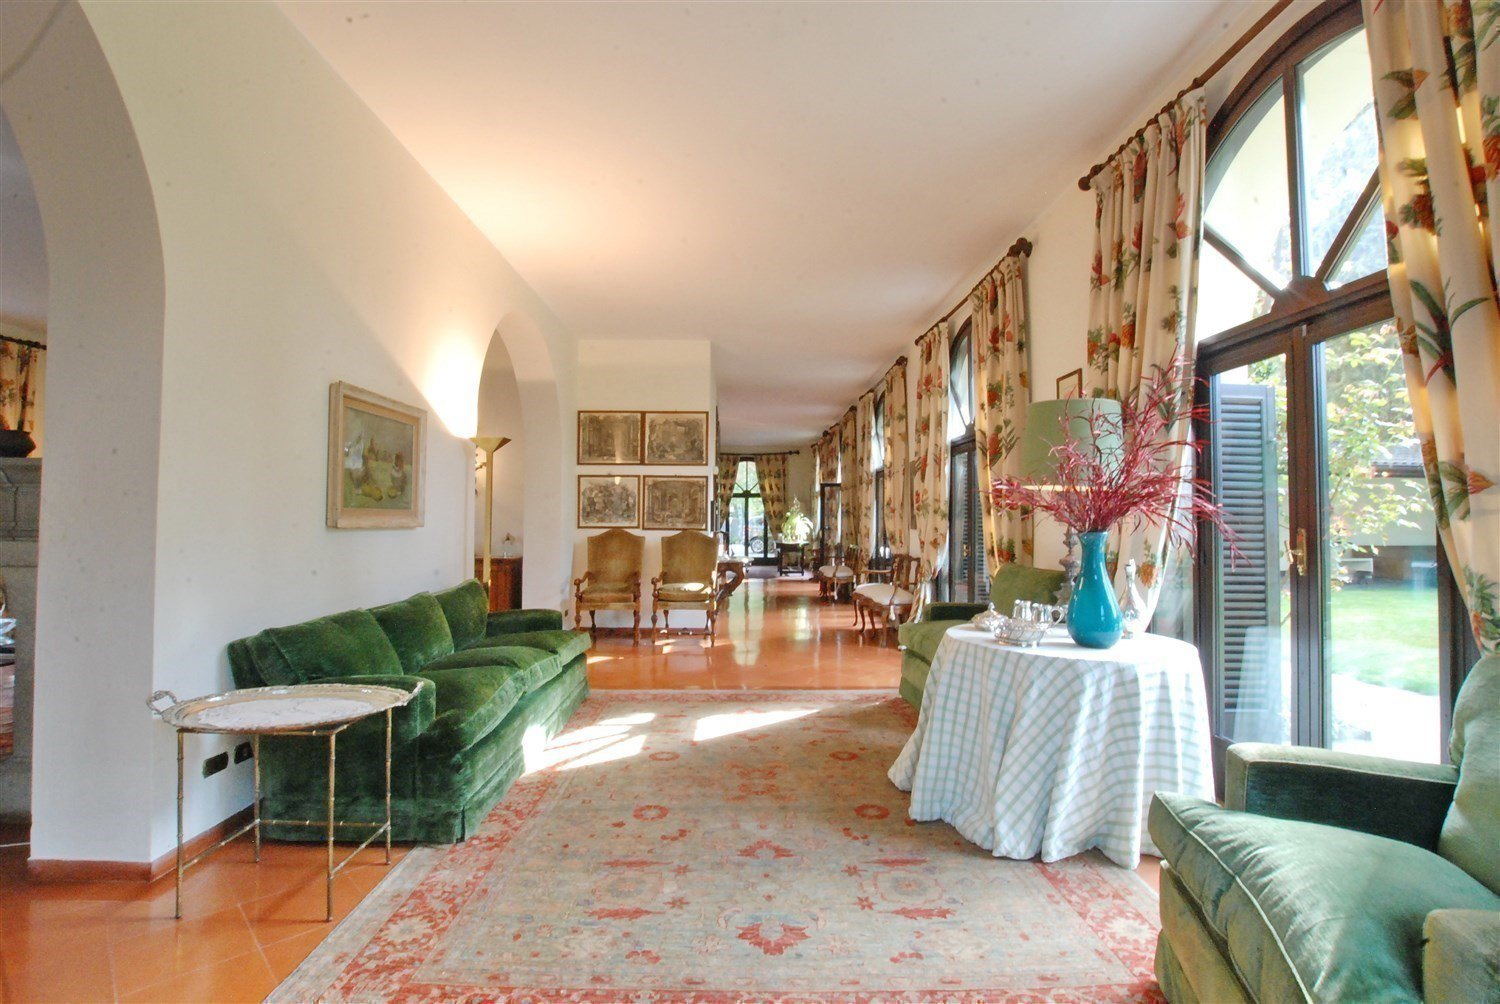 Period villa with park for sale on Ticino River - bright living room